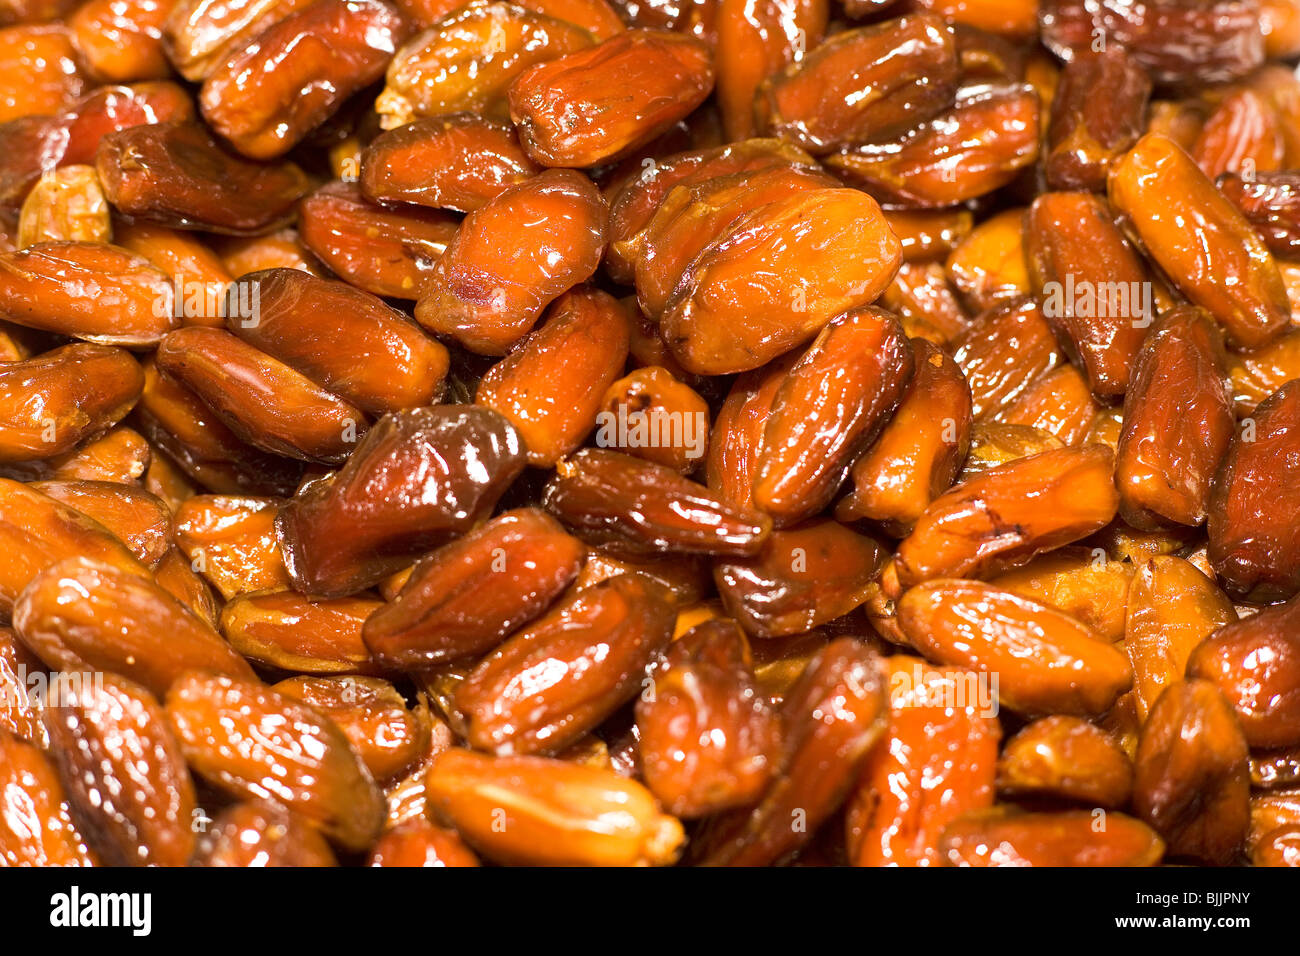 Dates at a stall in the municipal market (Mercado des Lavradores) in Madeira, Portugal. - Stock Image